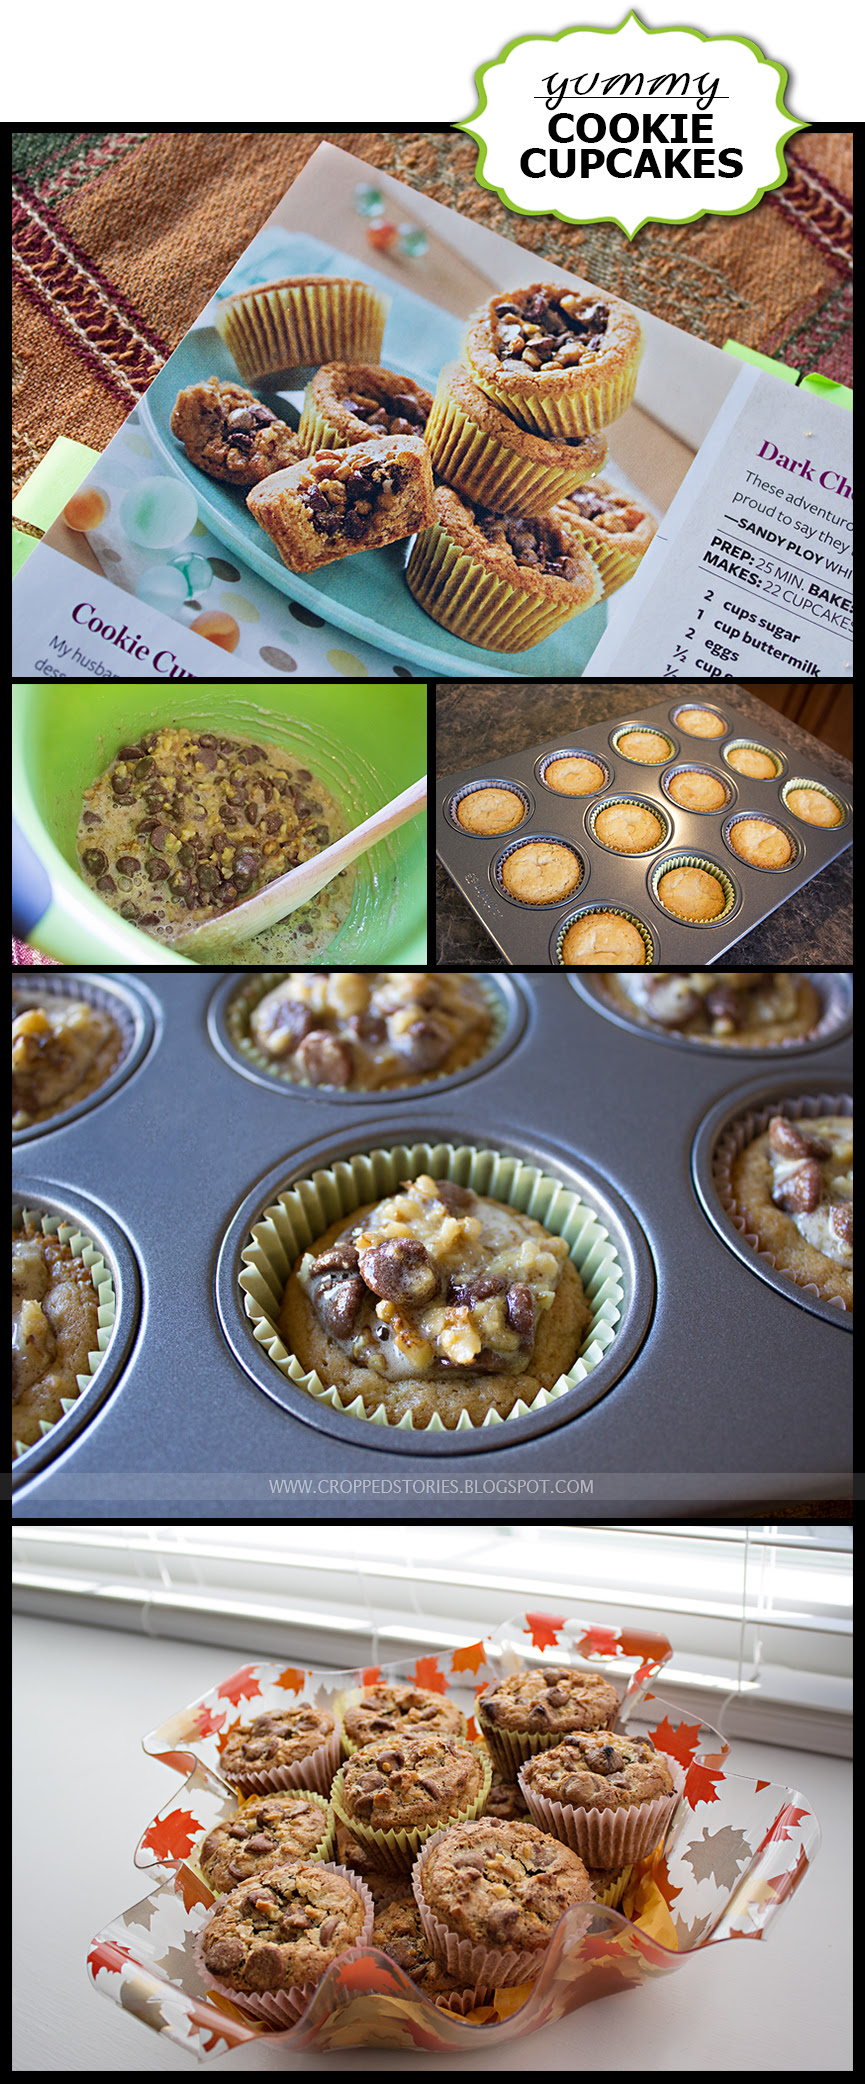 Yummy Chocolate Chip Cookie Cupcake Recipe via Cropped Stories